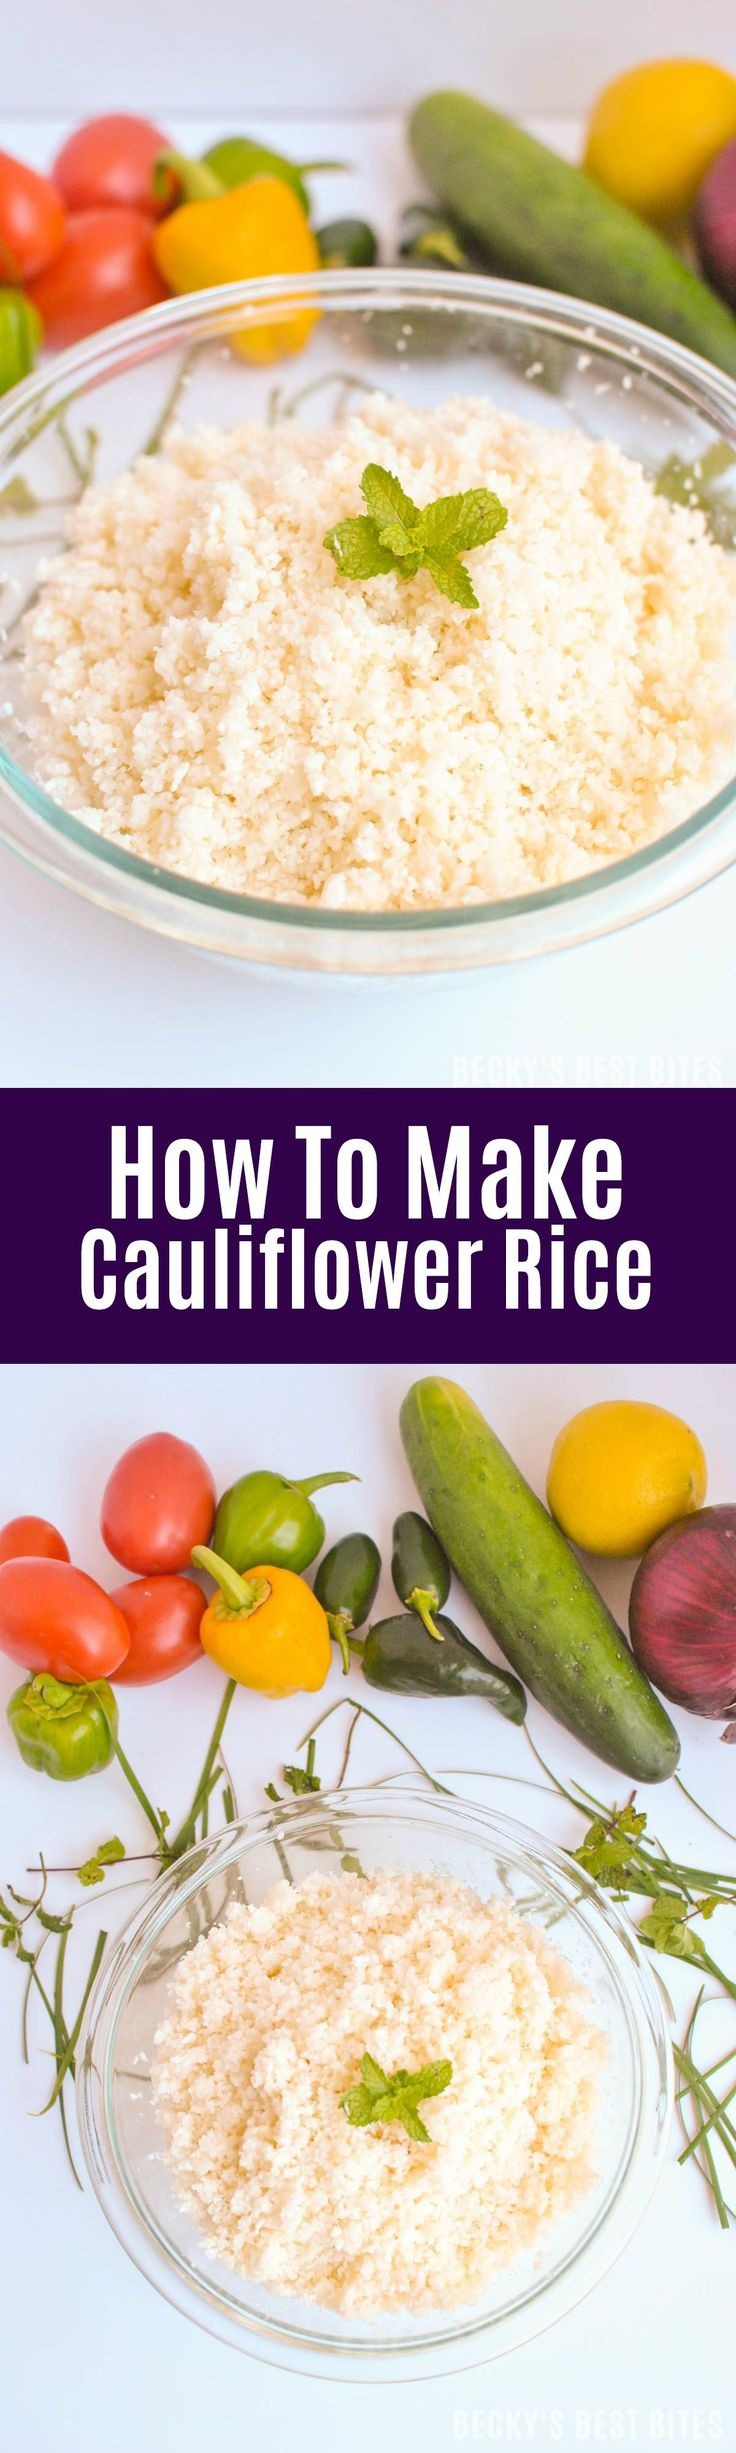 Cauliflower rice or couscous is a healthy, low carb, high fiber alternative to replace rice or couscous in any recipe. You will be able to satisfy even the most grain-loving family members with this easy dinner swap. beckysbestbites.com